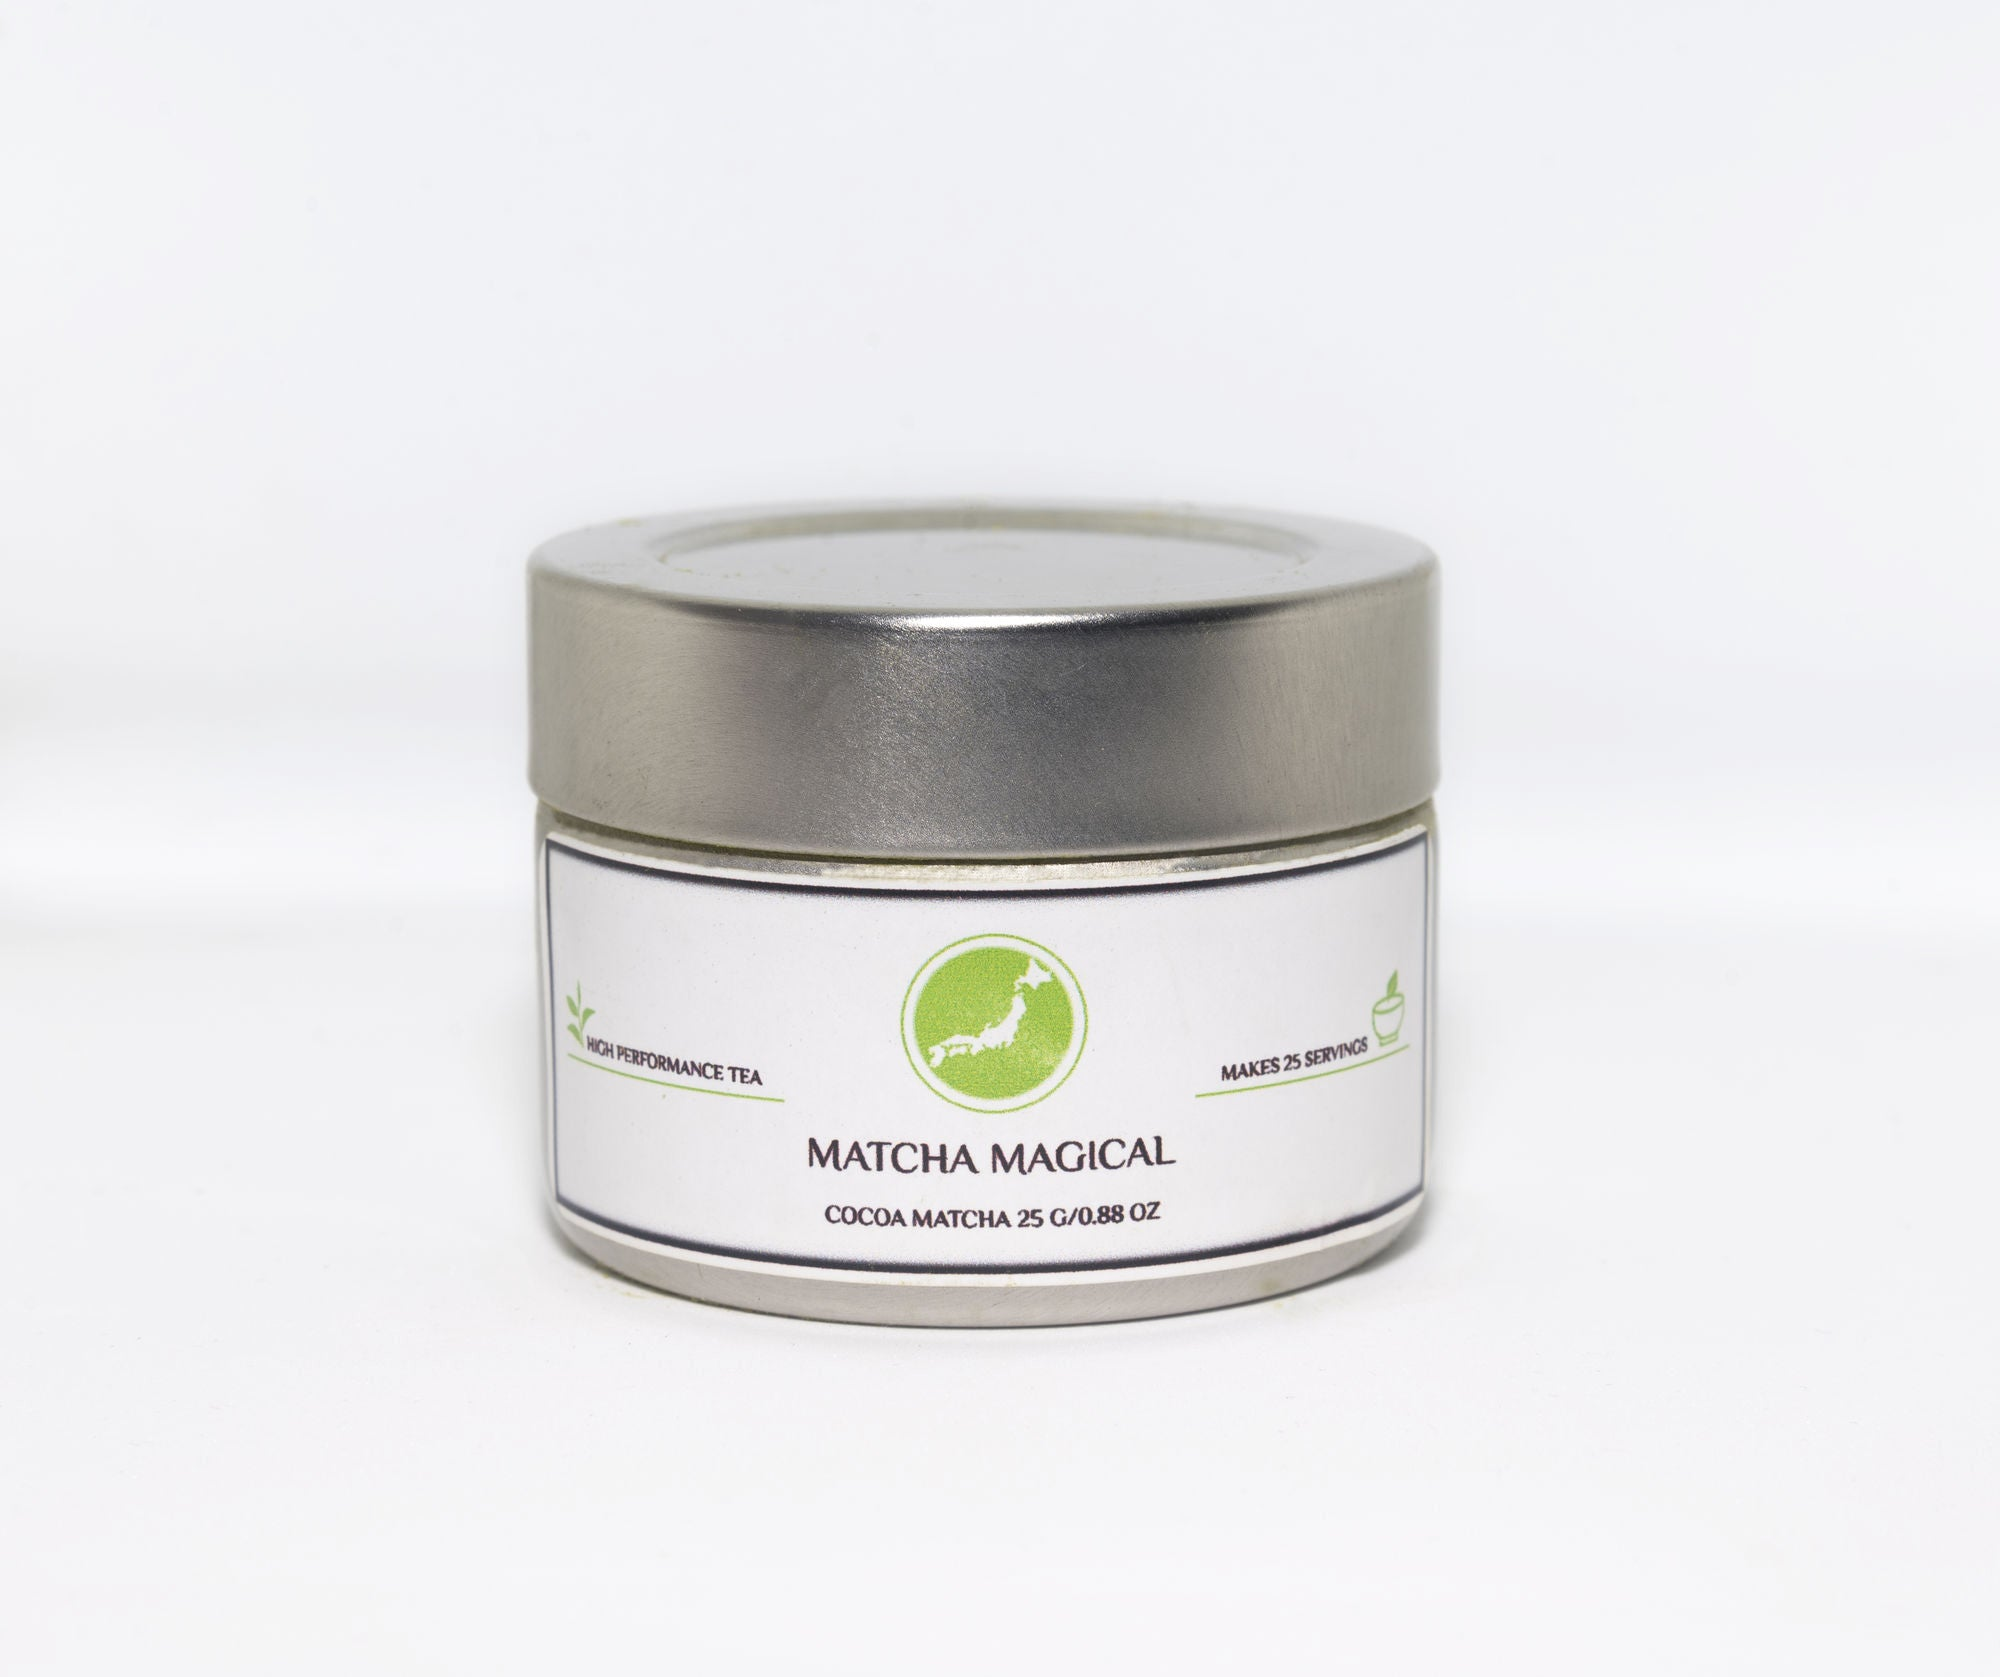 matcha magical cocoa matcha green tea powder in a tin